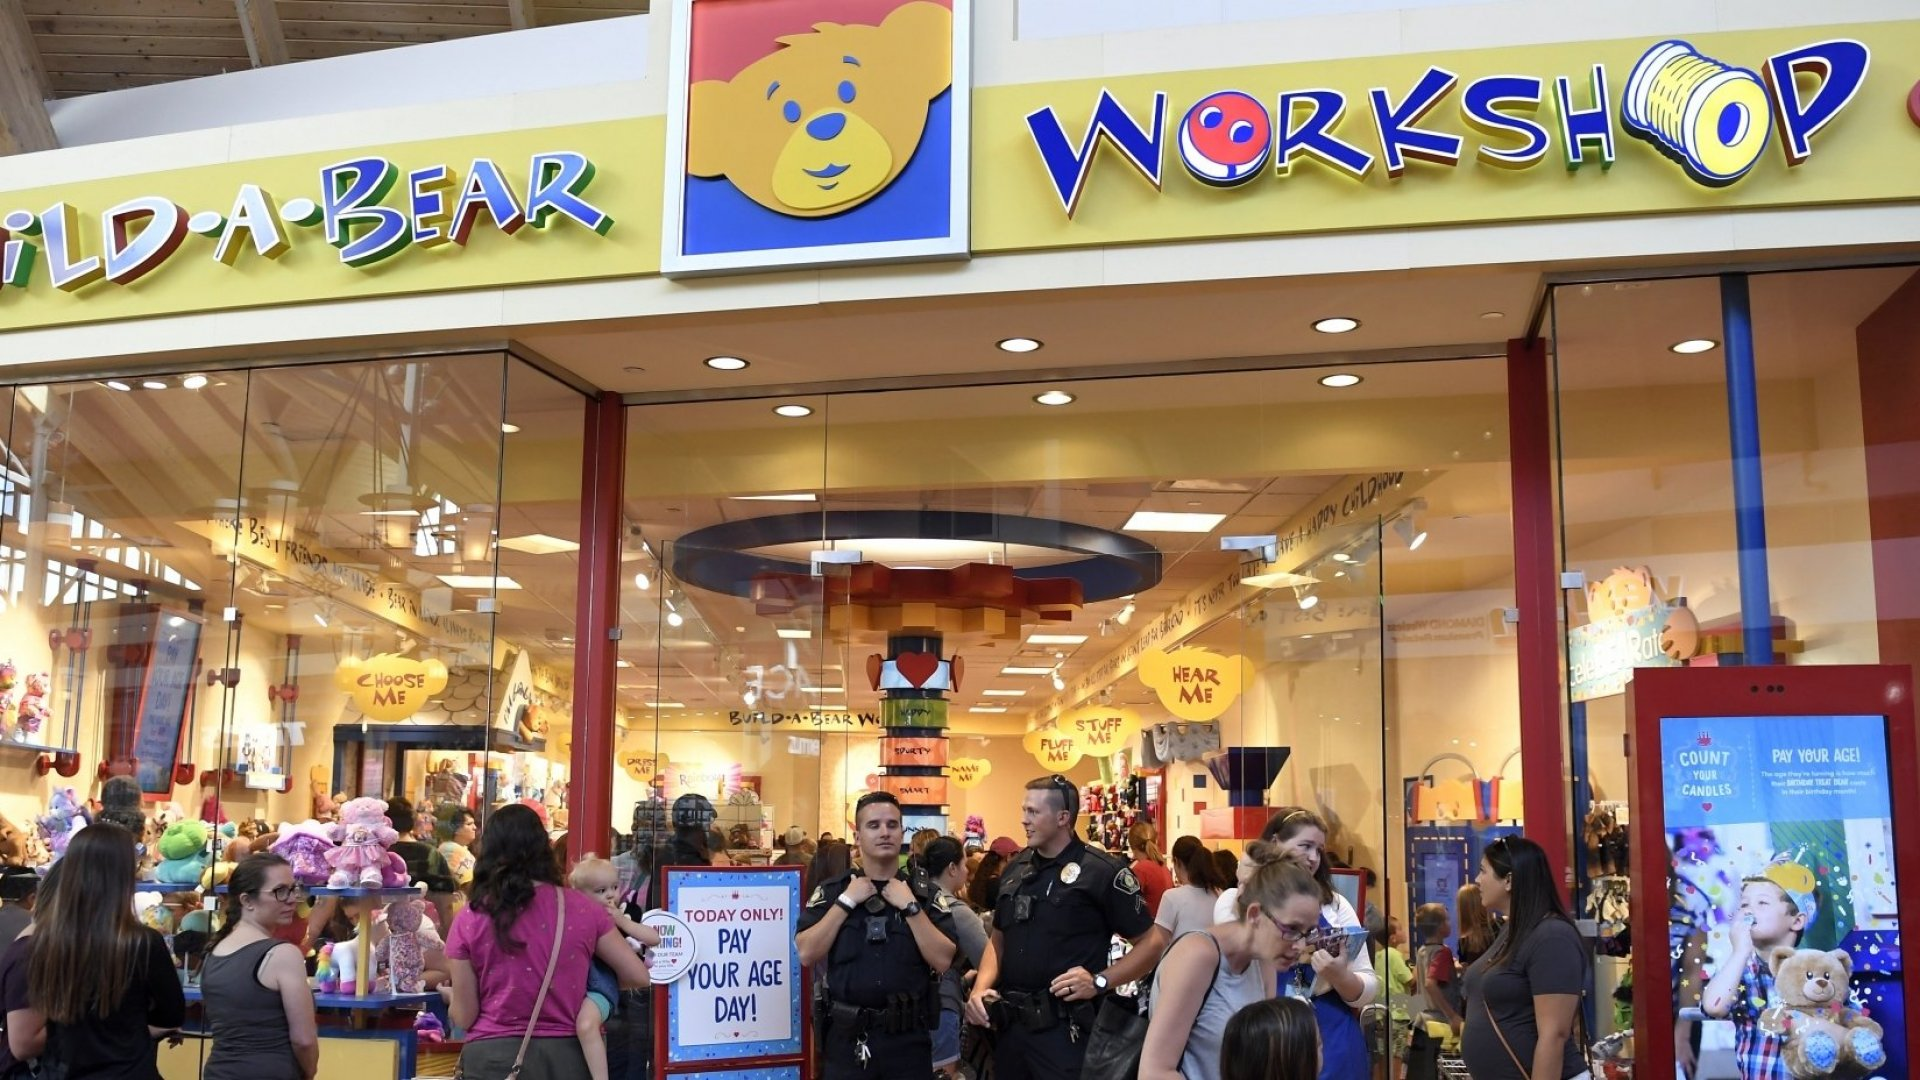 Build-a Bear Workshop Just Did Something So Crazy It Had to Shut It Down Almost Immediately (Yes, Customers Weren't Happy)